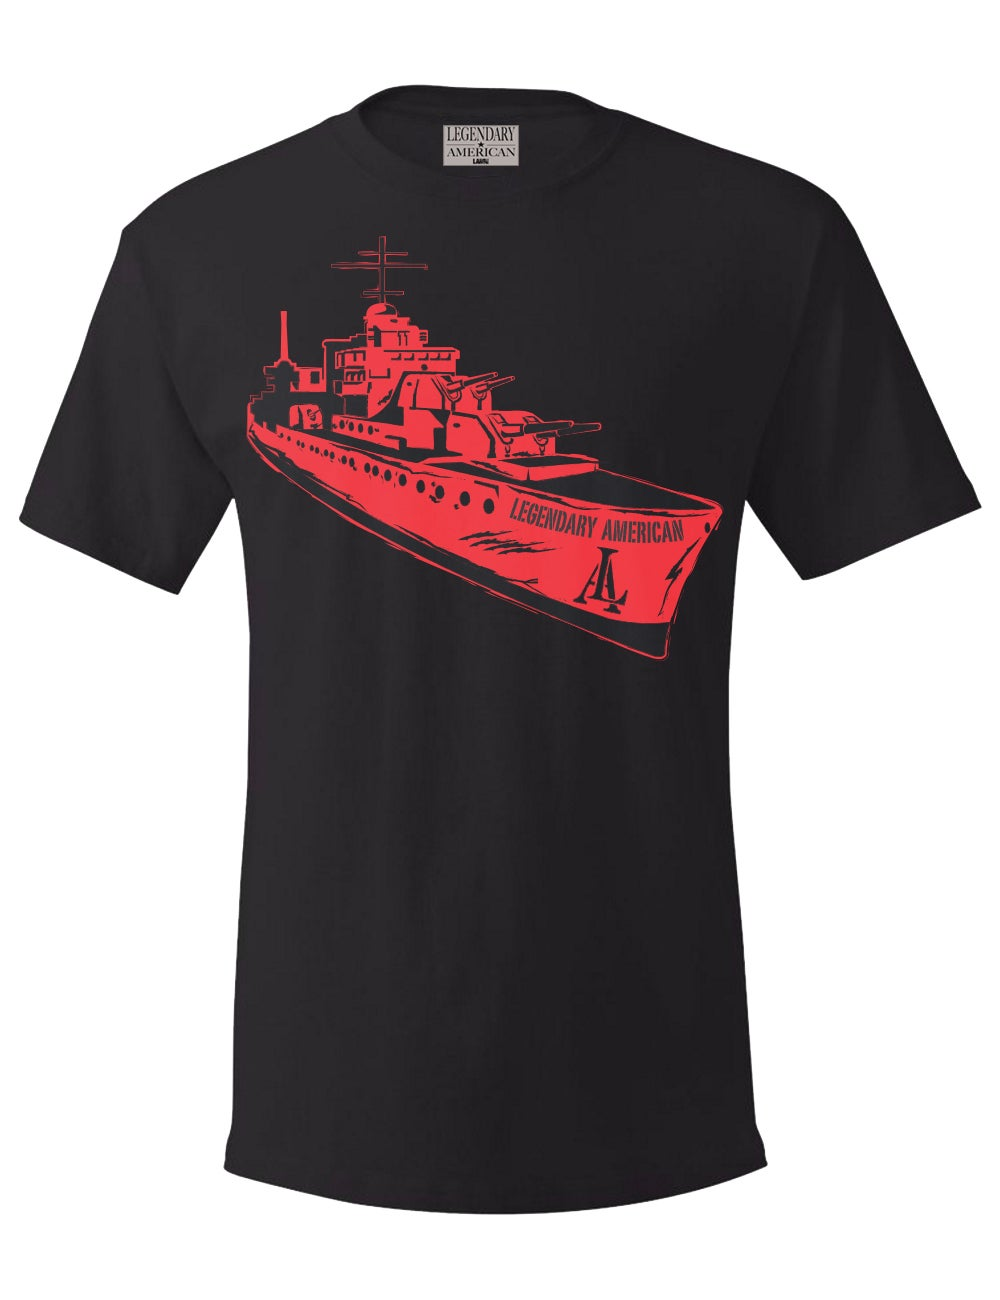 Image of Legendary American Battleship tee